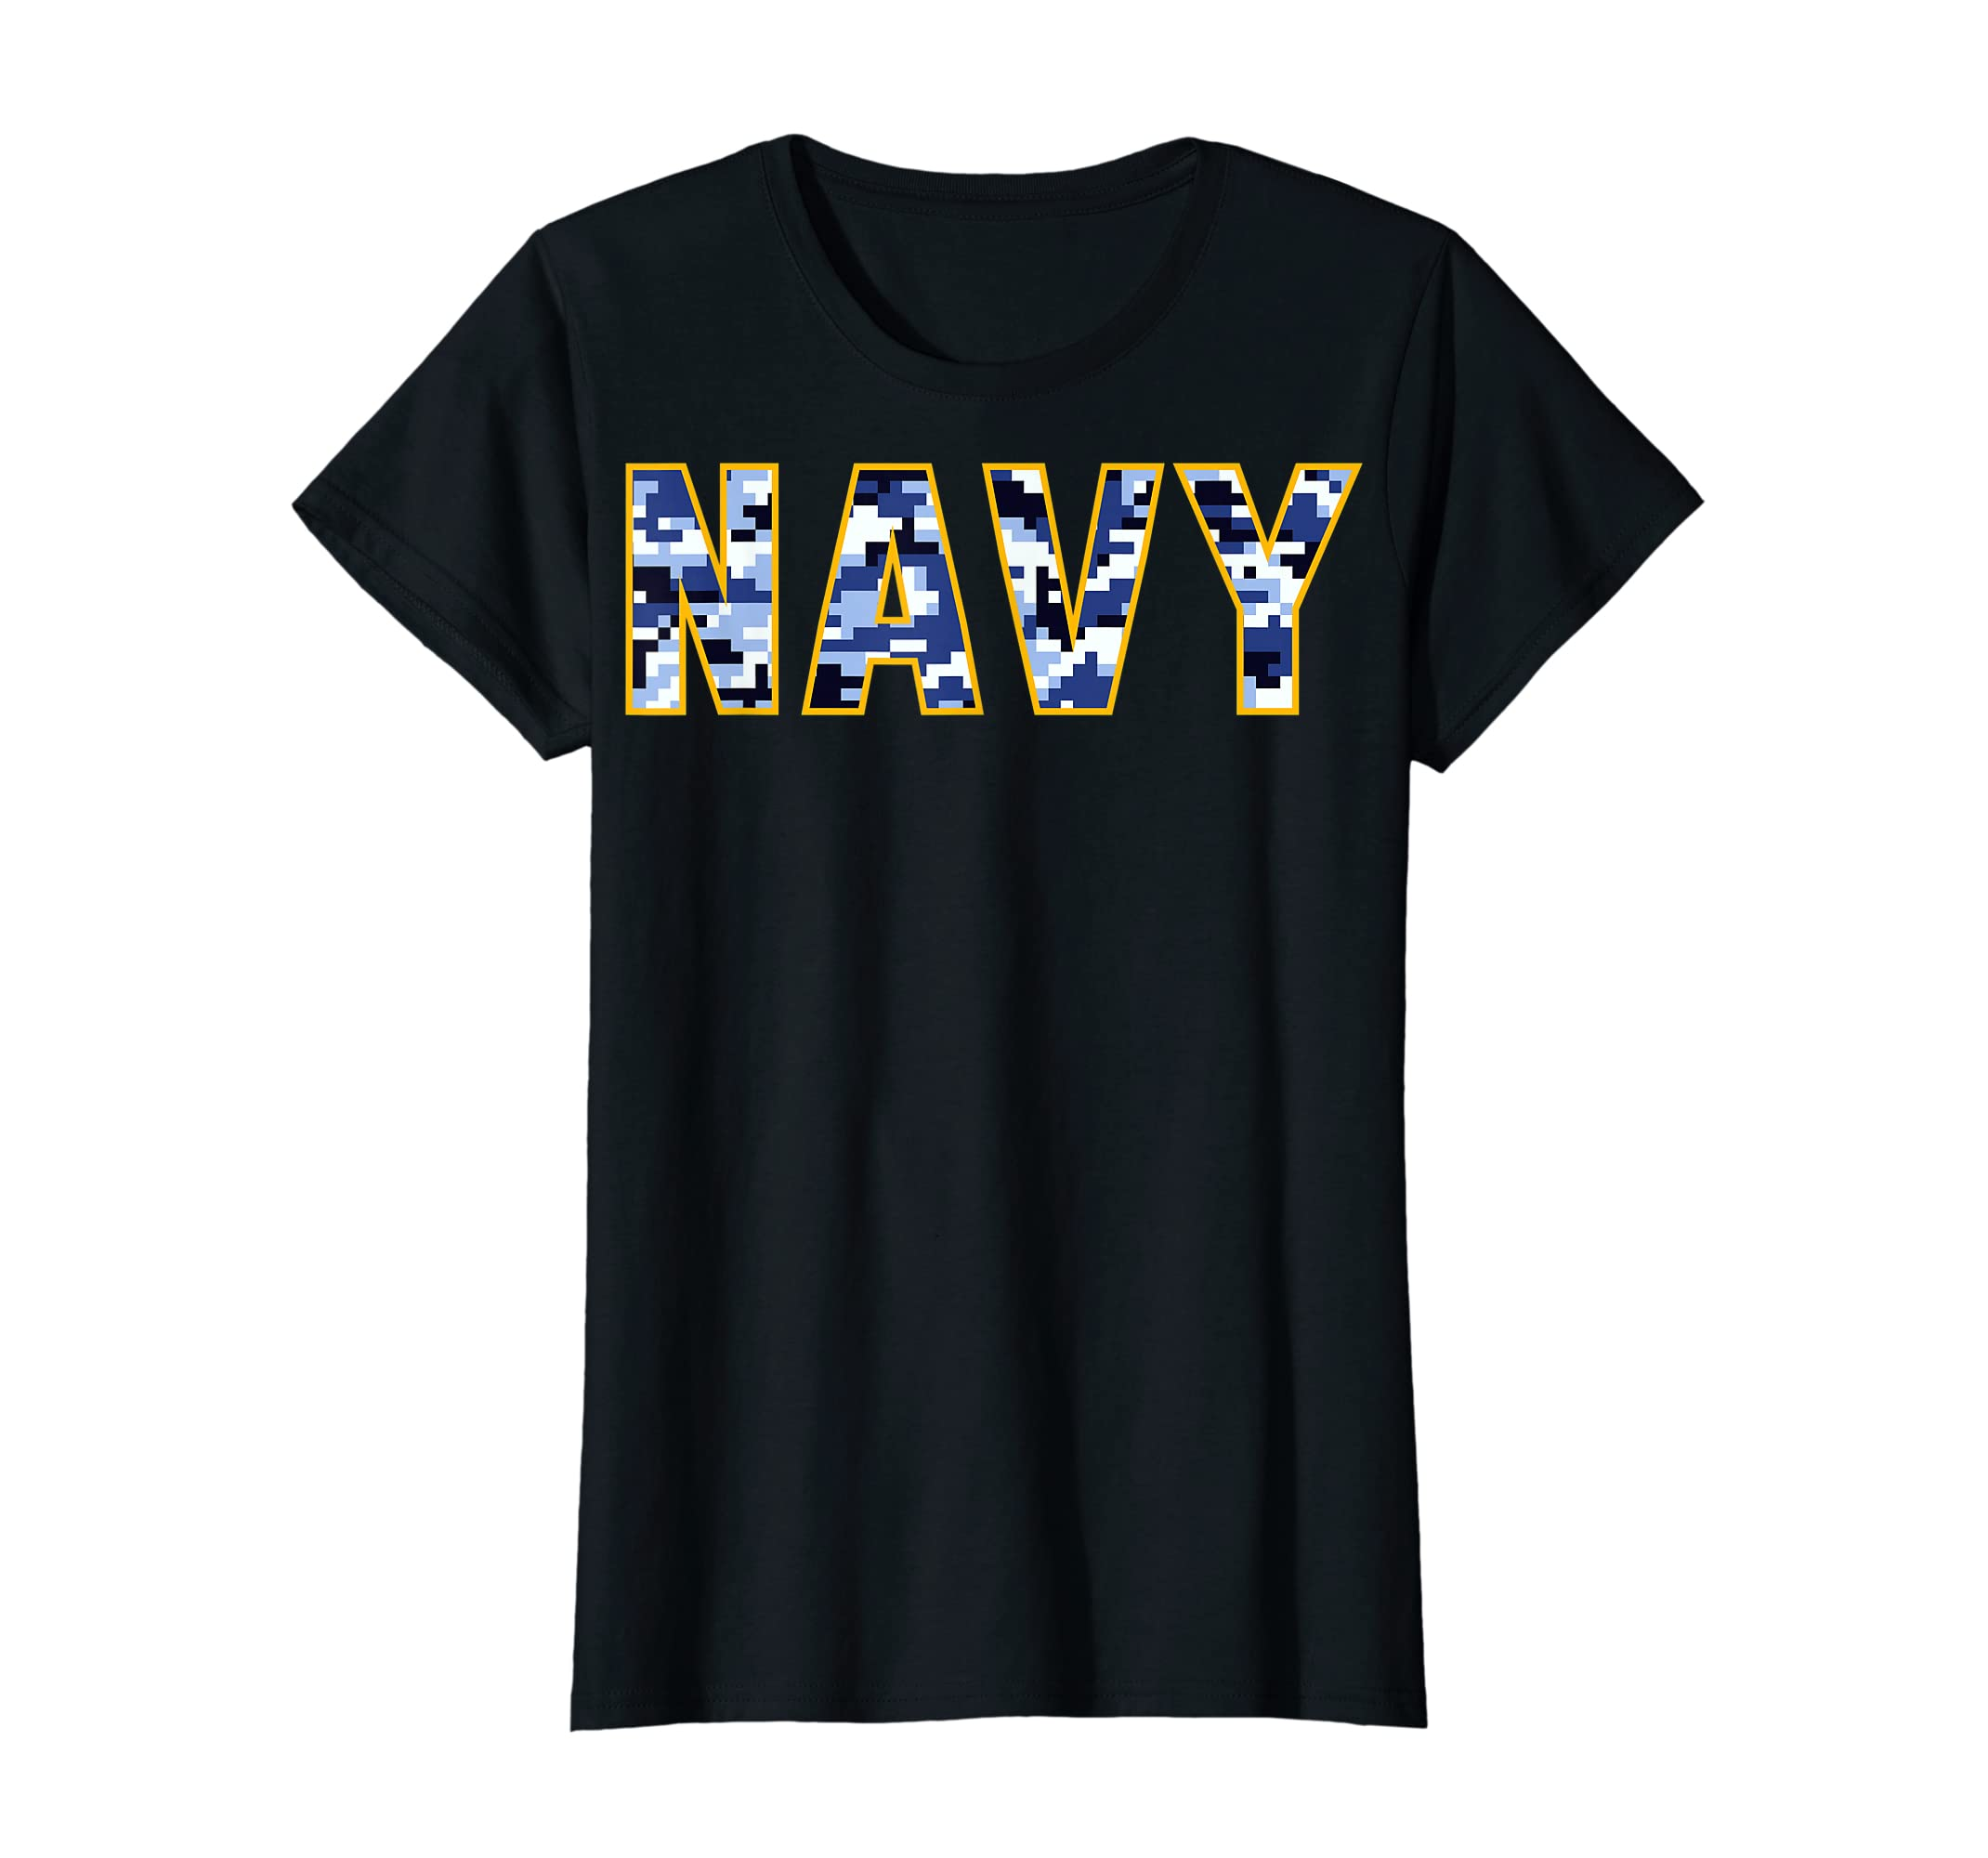 US Navy Camo Shirt Digital Camouflage Tee-Women's T-Shirt-Black